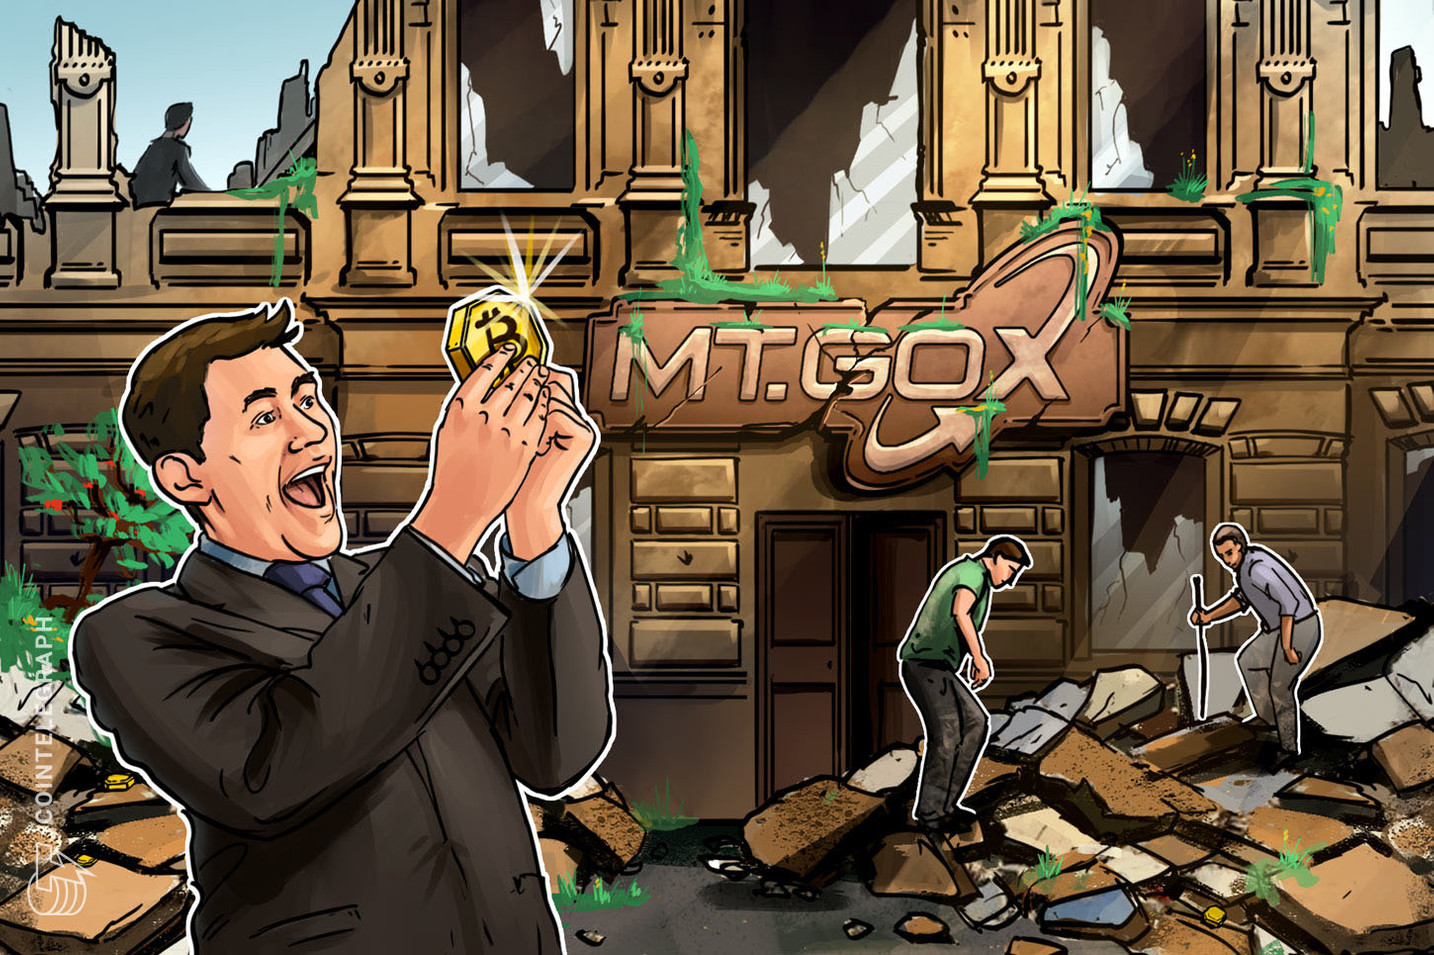 Unconfirmed: Mt. Gox Automatically Filing Creditors for Repayment